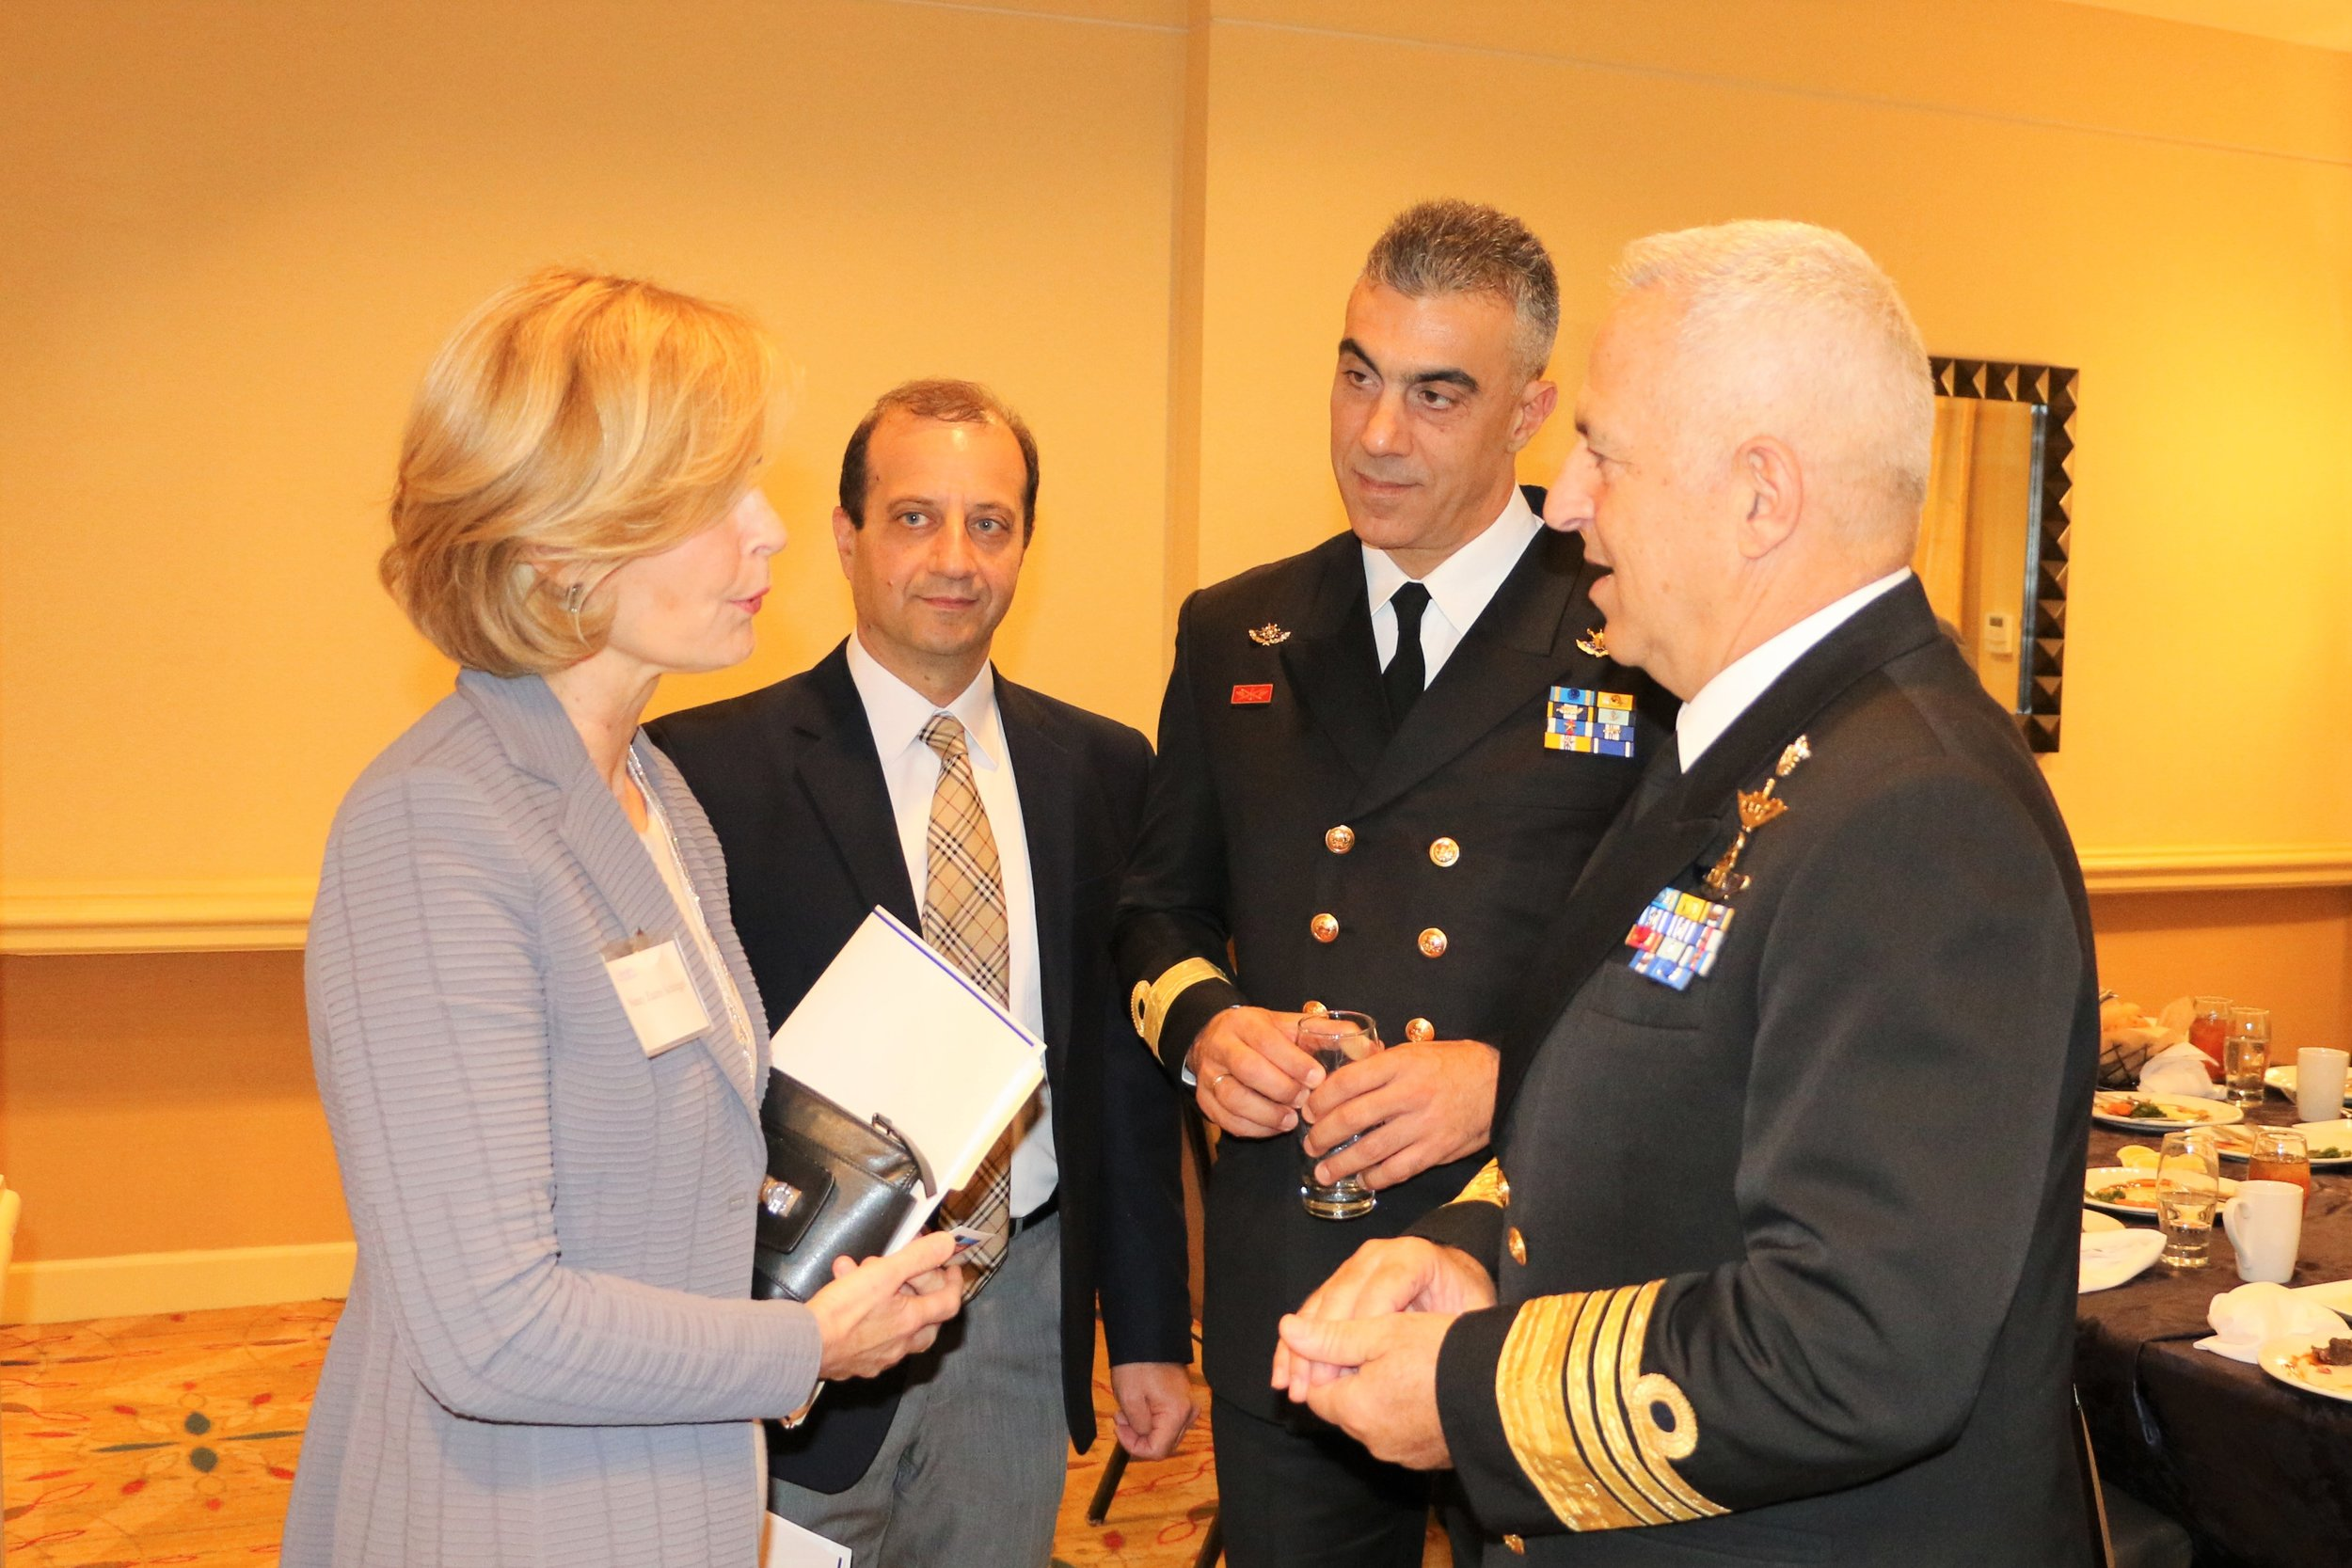 Admiral Apostolakis discusses further cooperation between the United States and Greece.